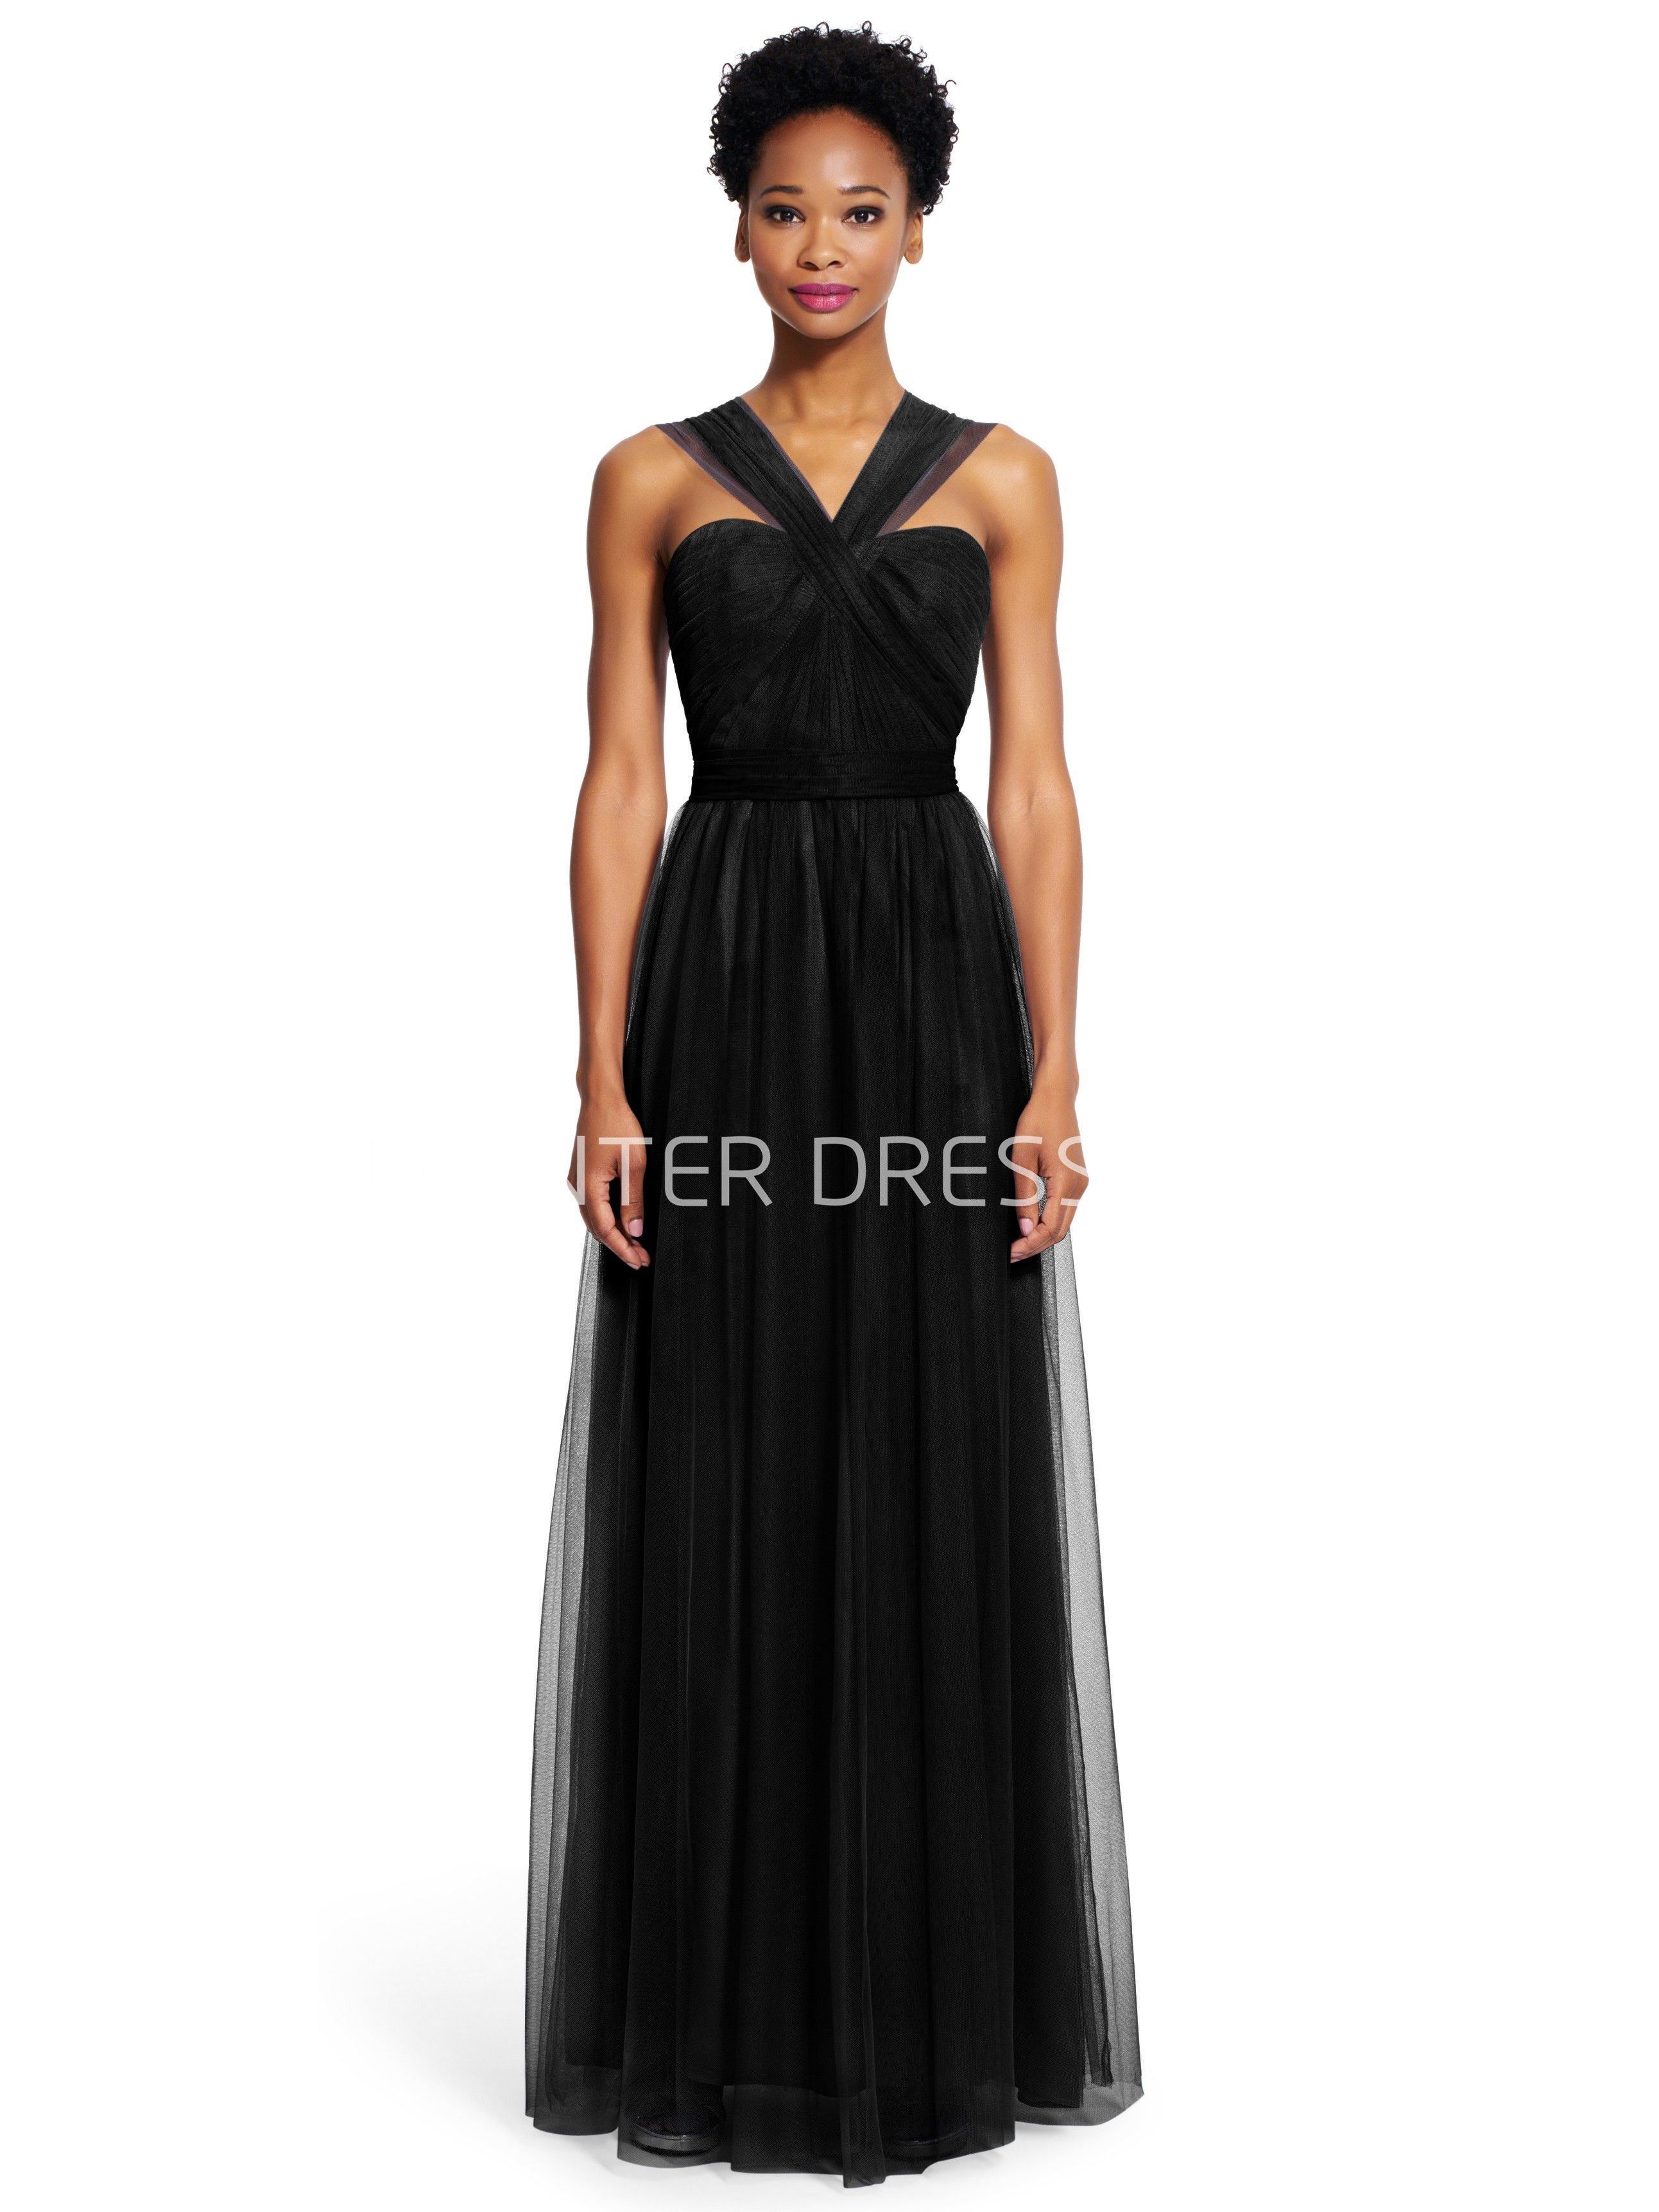 Sheath ruched strapless tulle bridesmaid dress black bridesmaids 12589 unique sheath ruched strapless tulle black bridesmaid dress httpwww ombrellifo Gallery